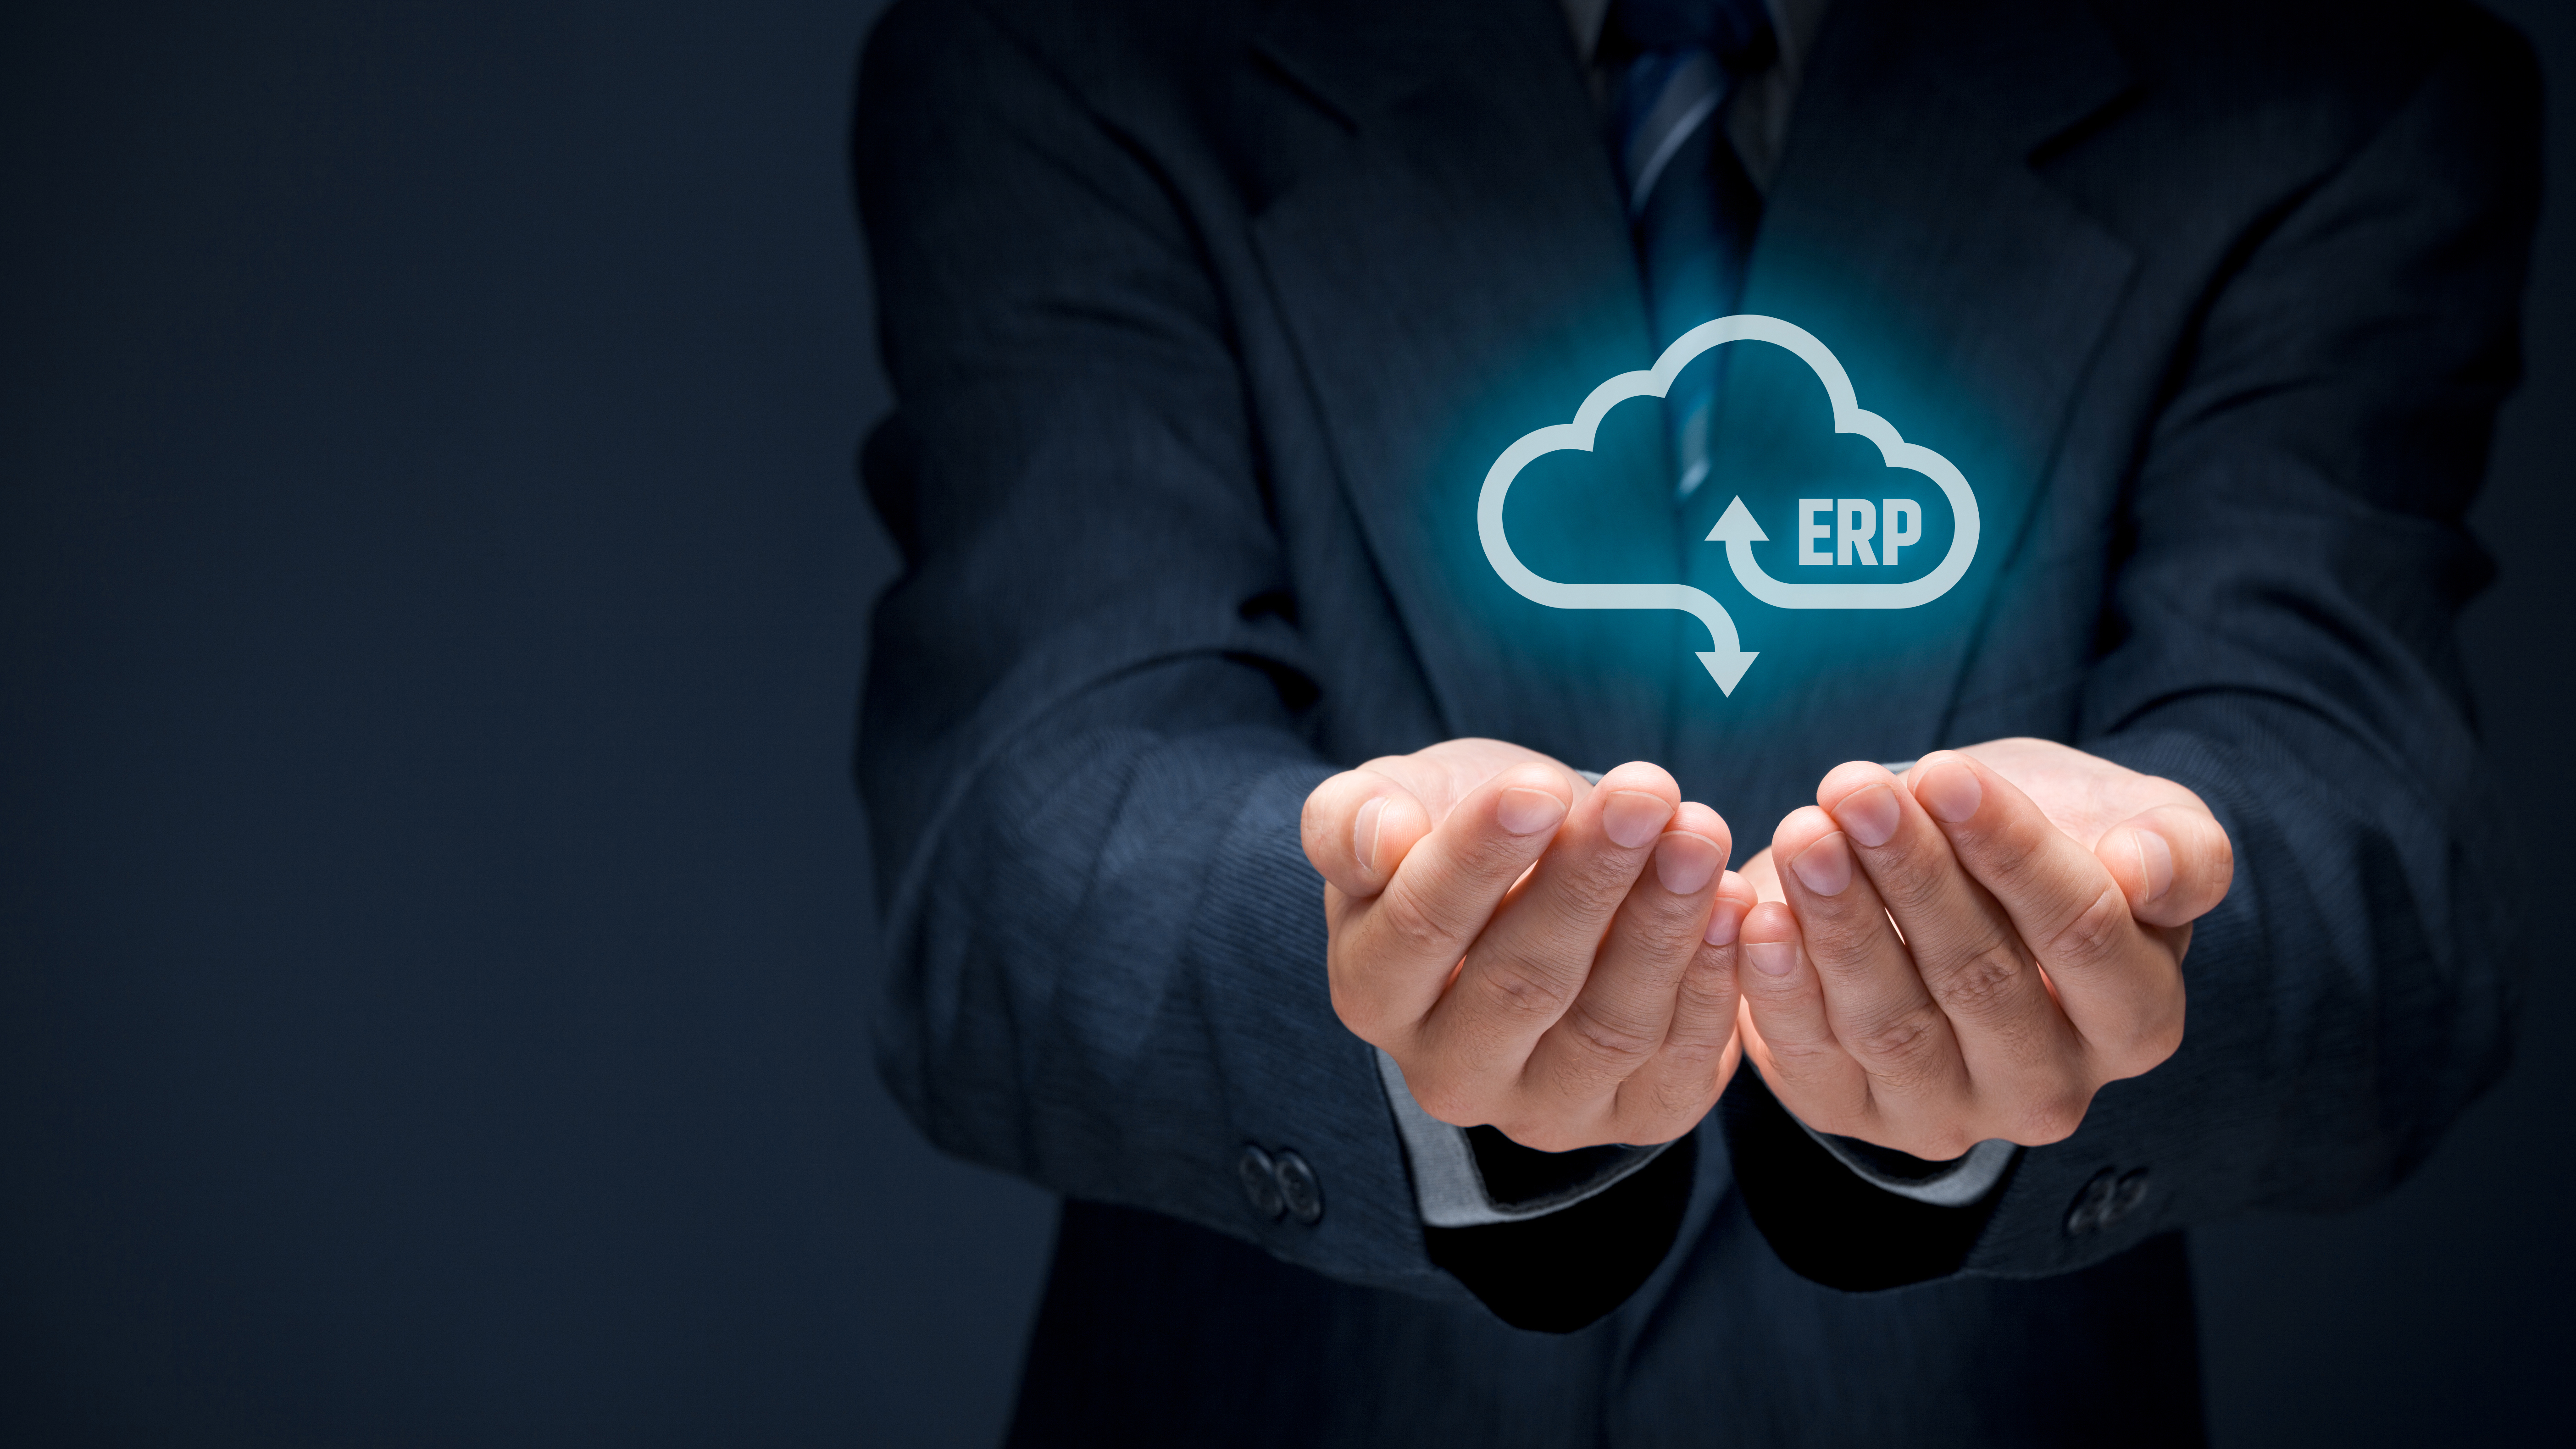 Starty ERP il software gestionale Cloud nativo per le PMI